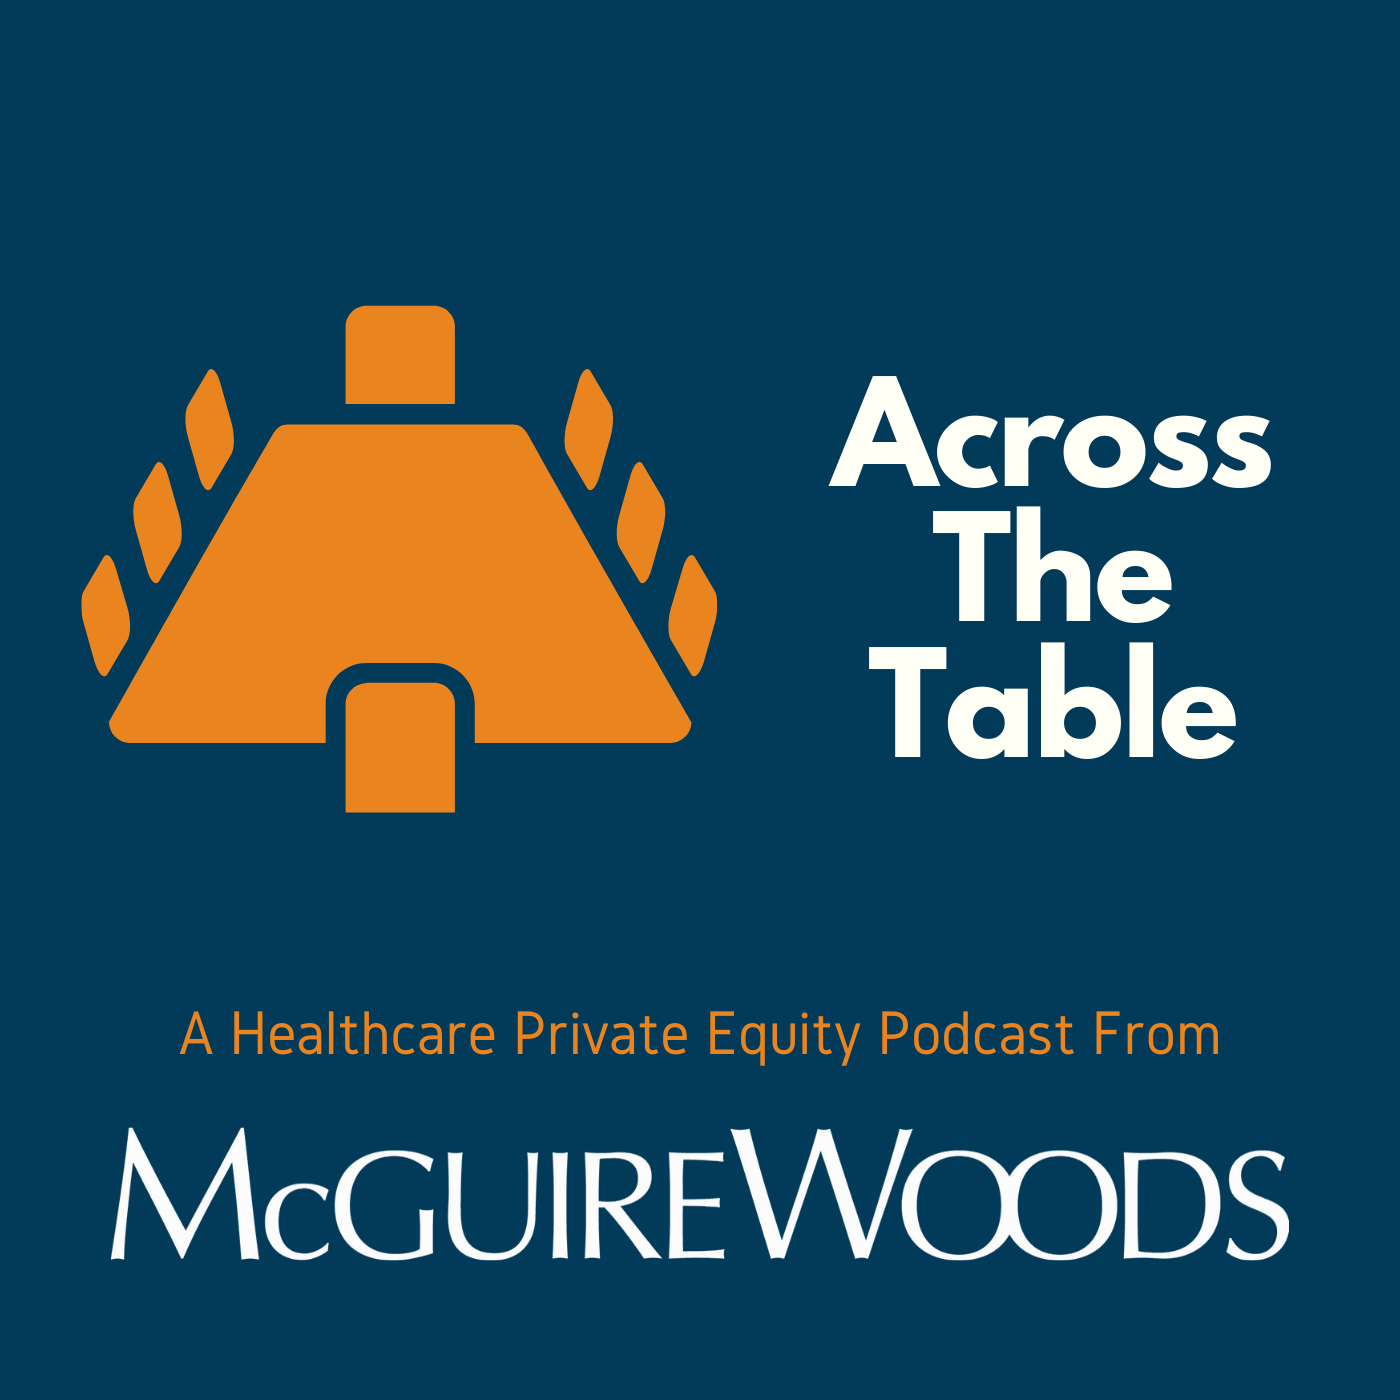 Artwork for podcast Across the Table